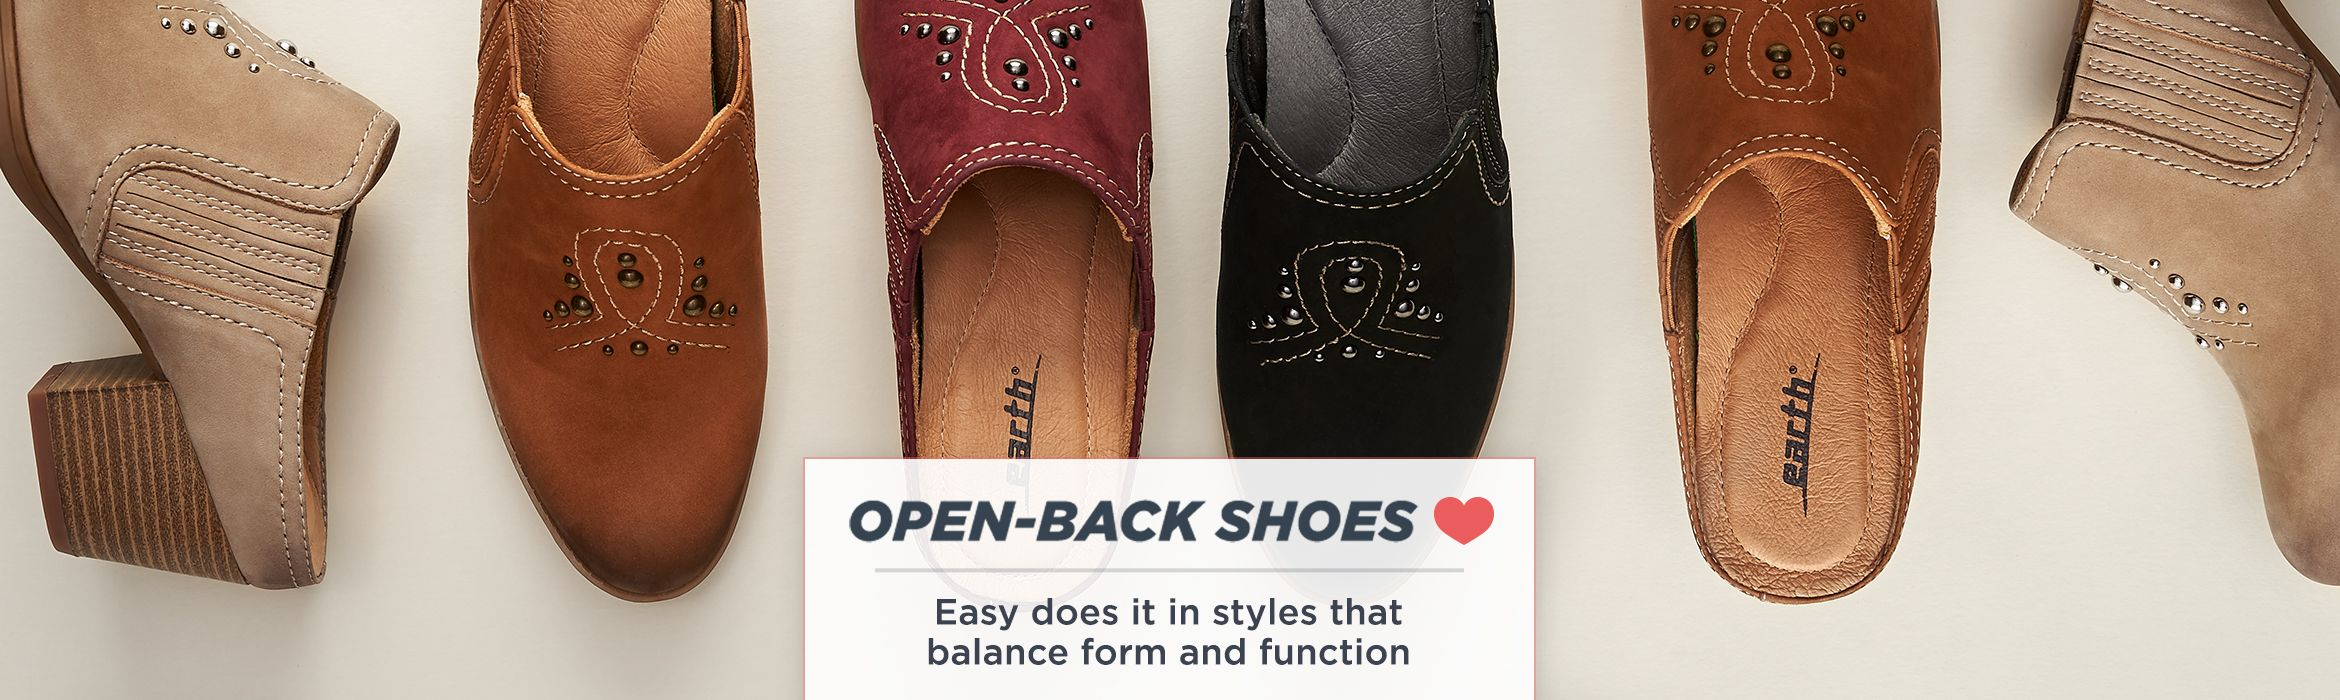 Open-Back Shoes. Easy does it in styles that balance form and function